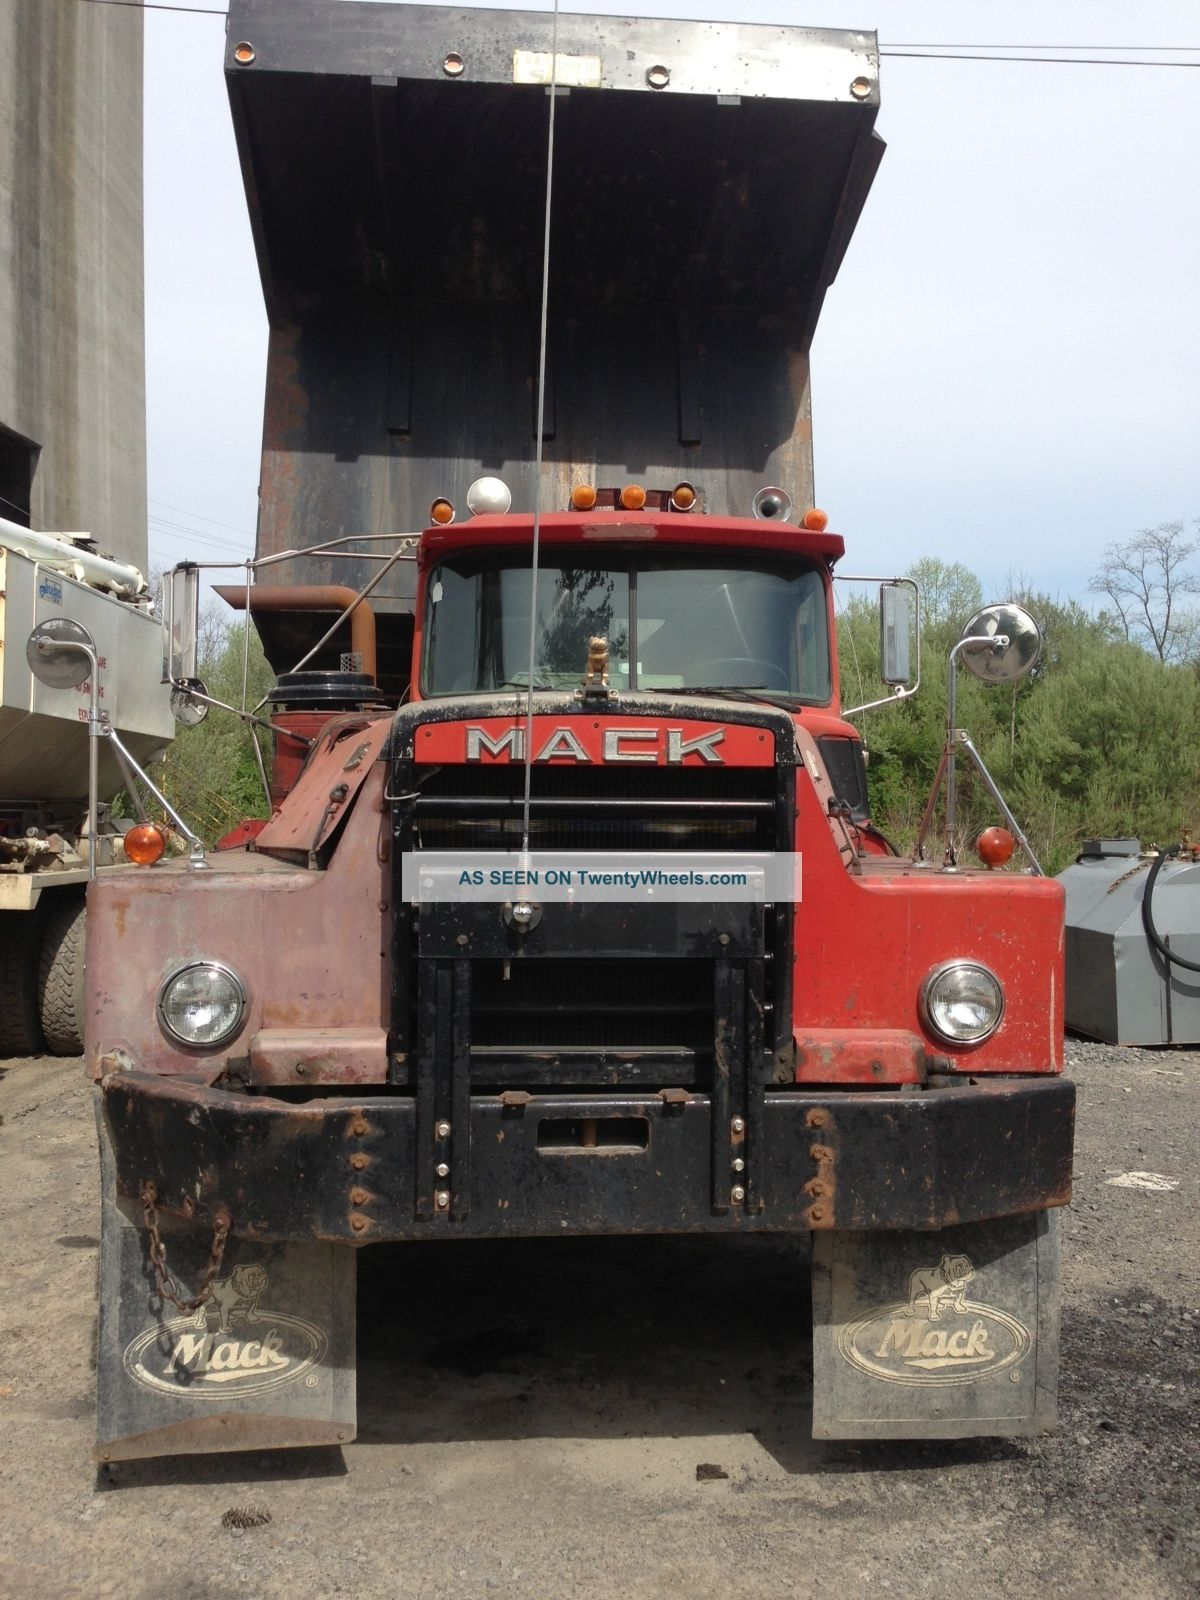 hight resolution of 1980 mack dm 800 gabbard bros trucking new paint pic 1 mack trucks pinterest mack trucks trucks and dump trucks